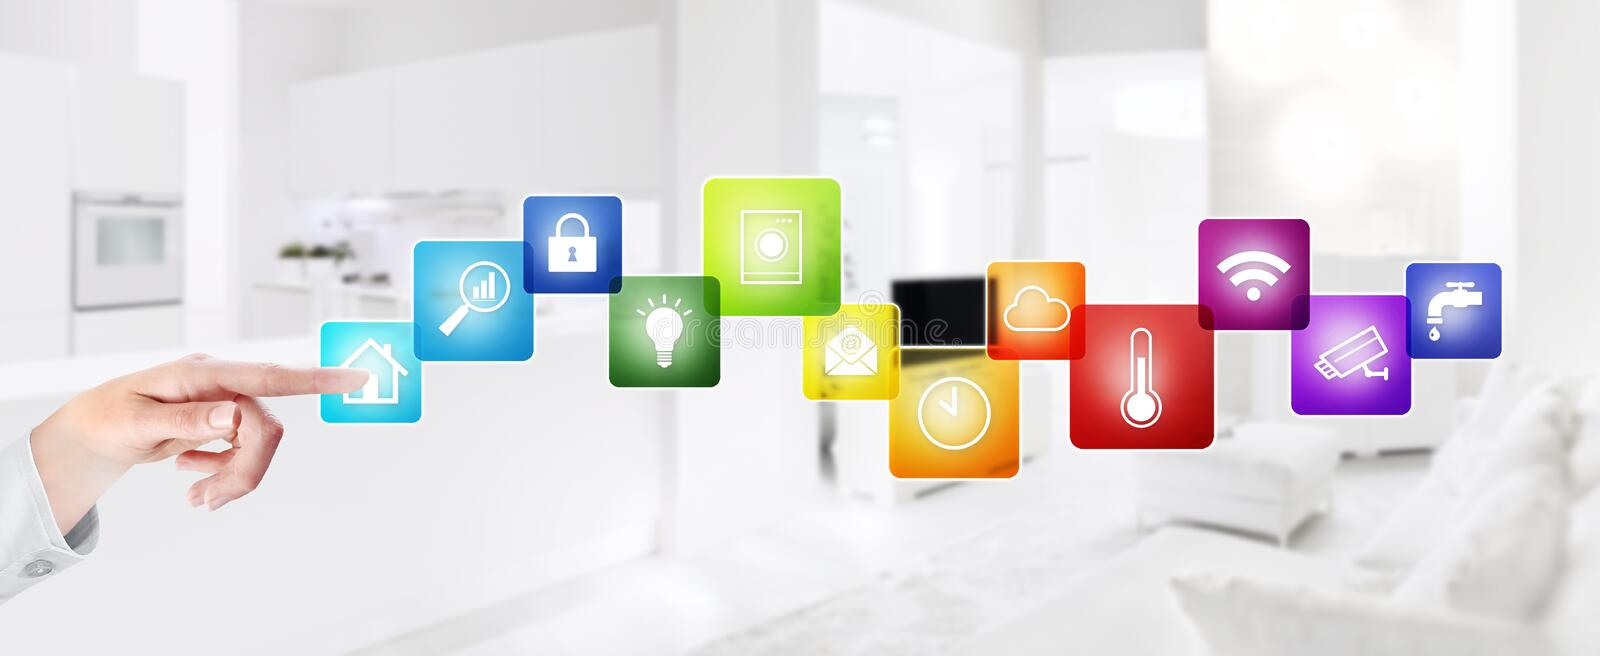 Smart home automation hand touch screen with colored symbols on interior rooms blurred background web banner and copy space. Smart home automation hand screen stock photo